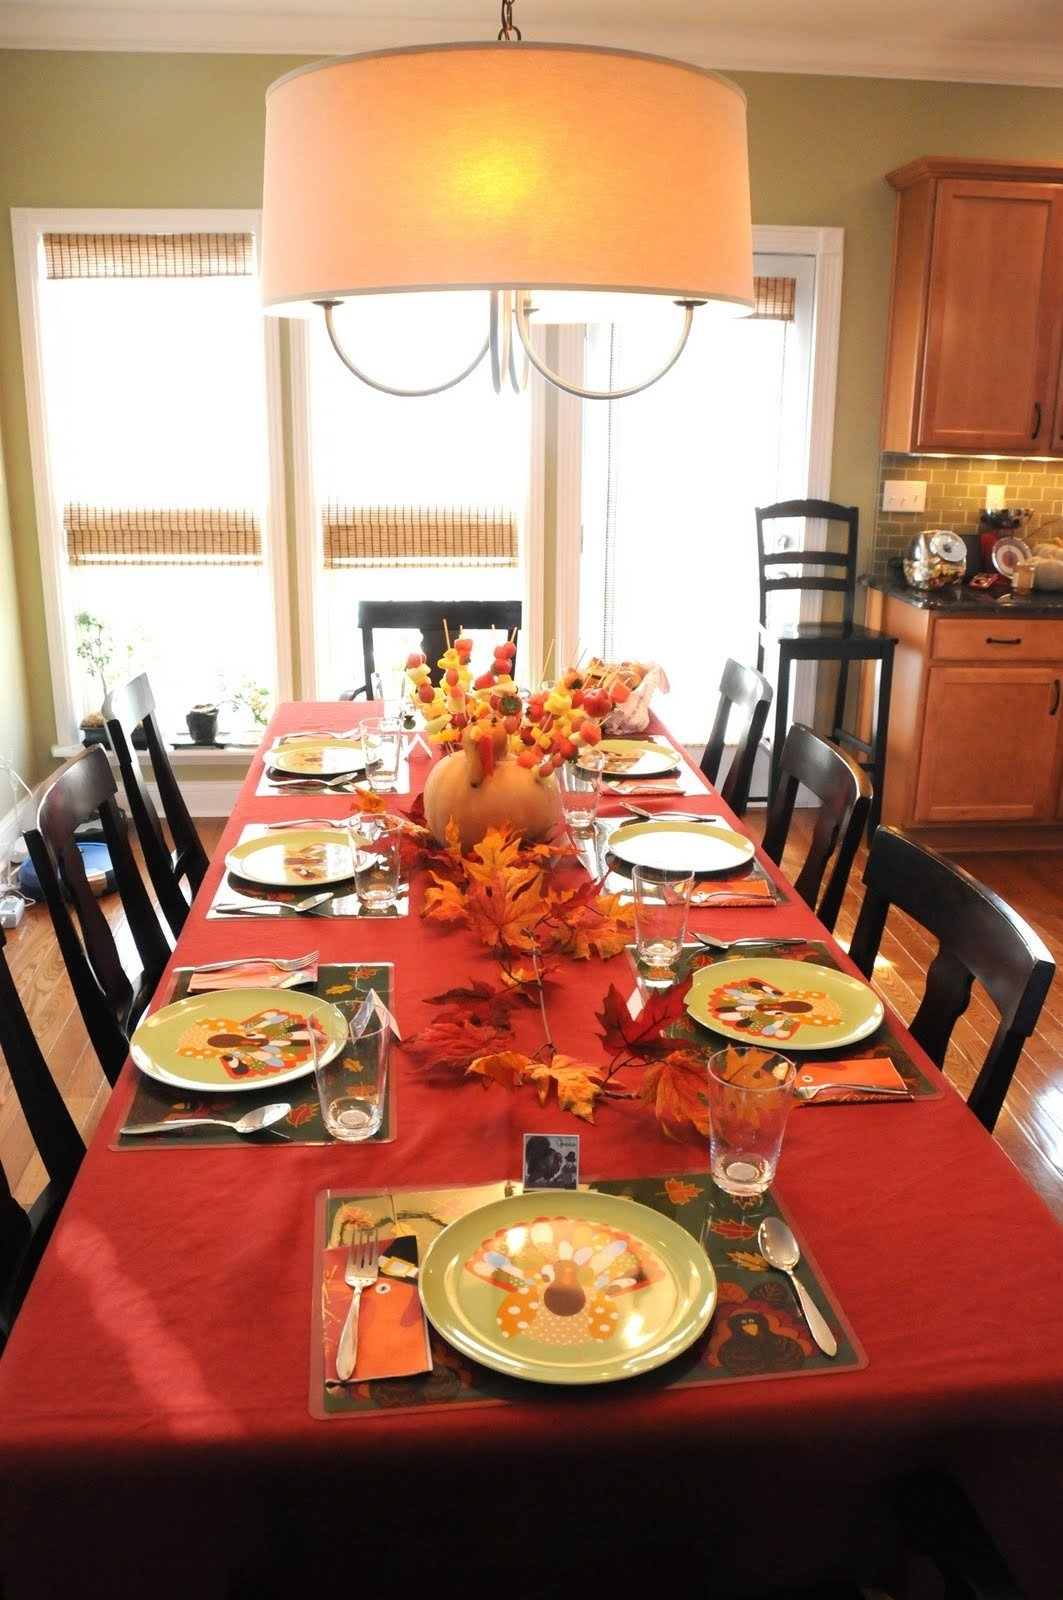 10 Attractive Table Setting Ideas For Thanksgiving how to set up a table for thanksgiving dinner from fancy how to 2021